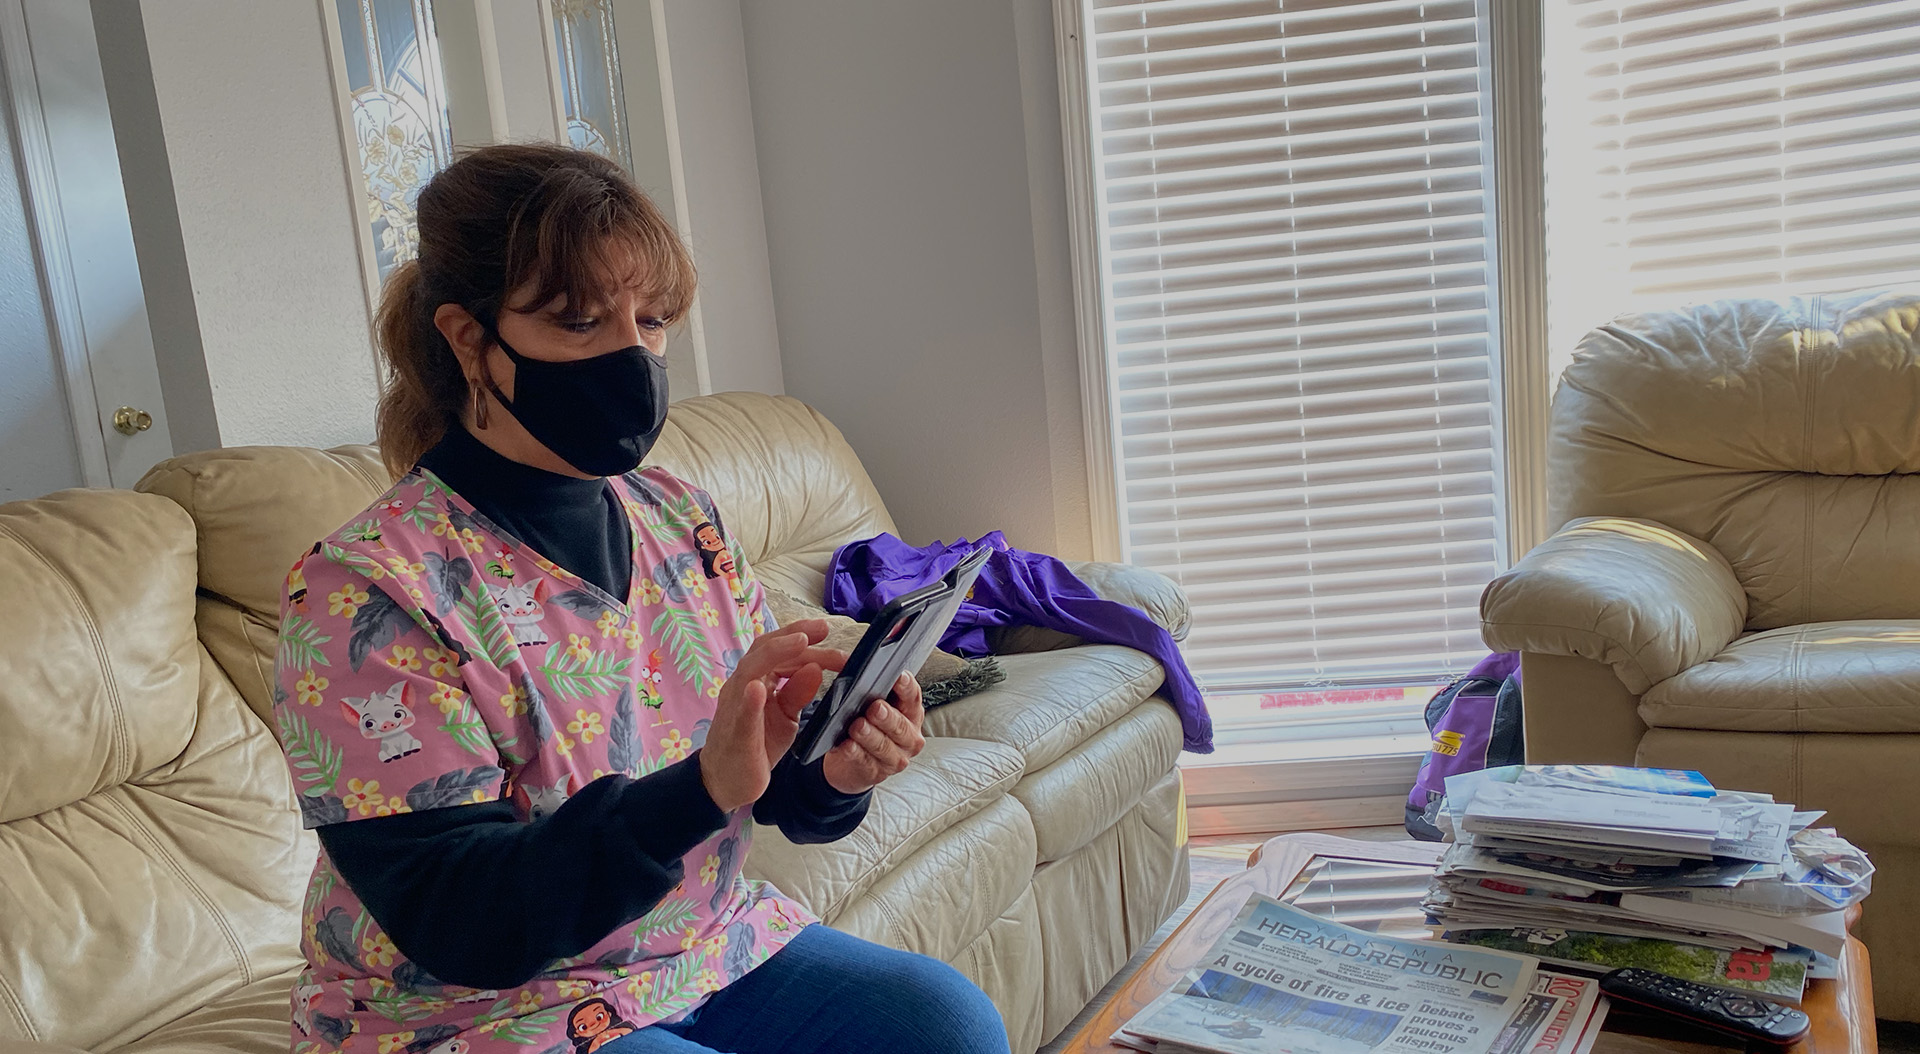 A caregiver wearing a mask looks at their phone